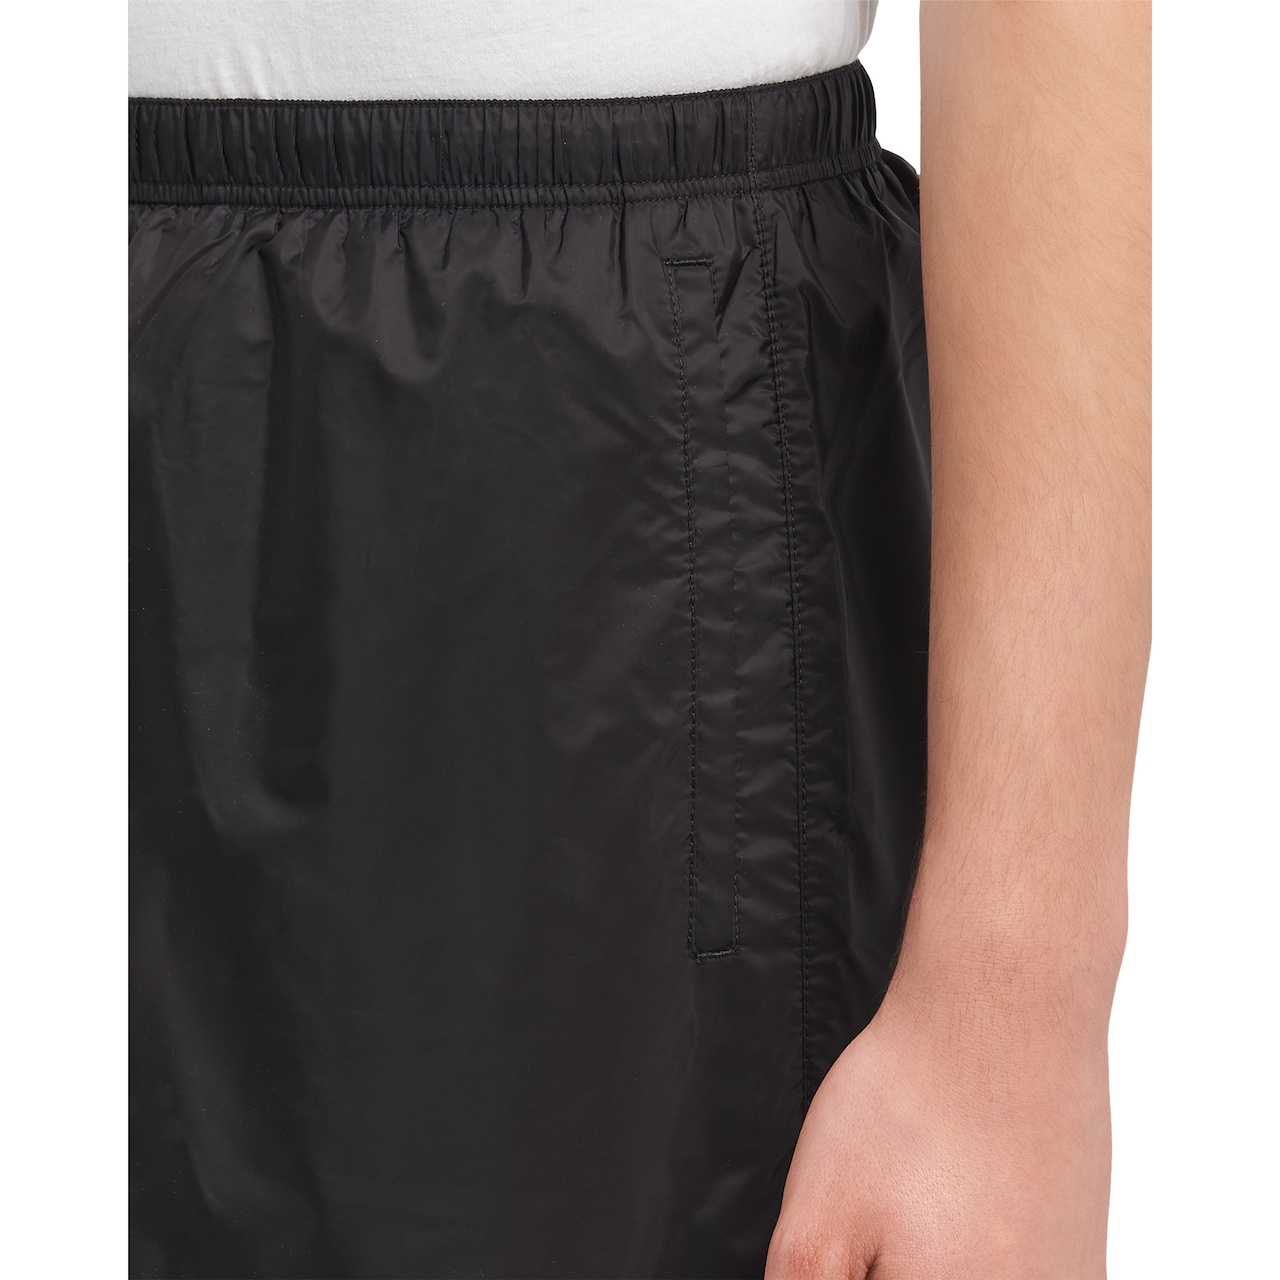 Prada Nylon swim trunks 5